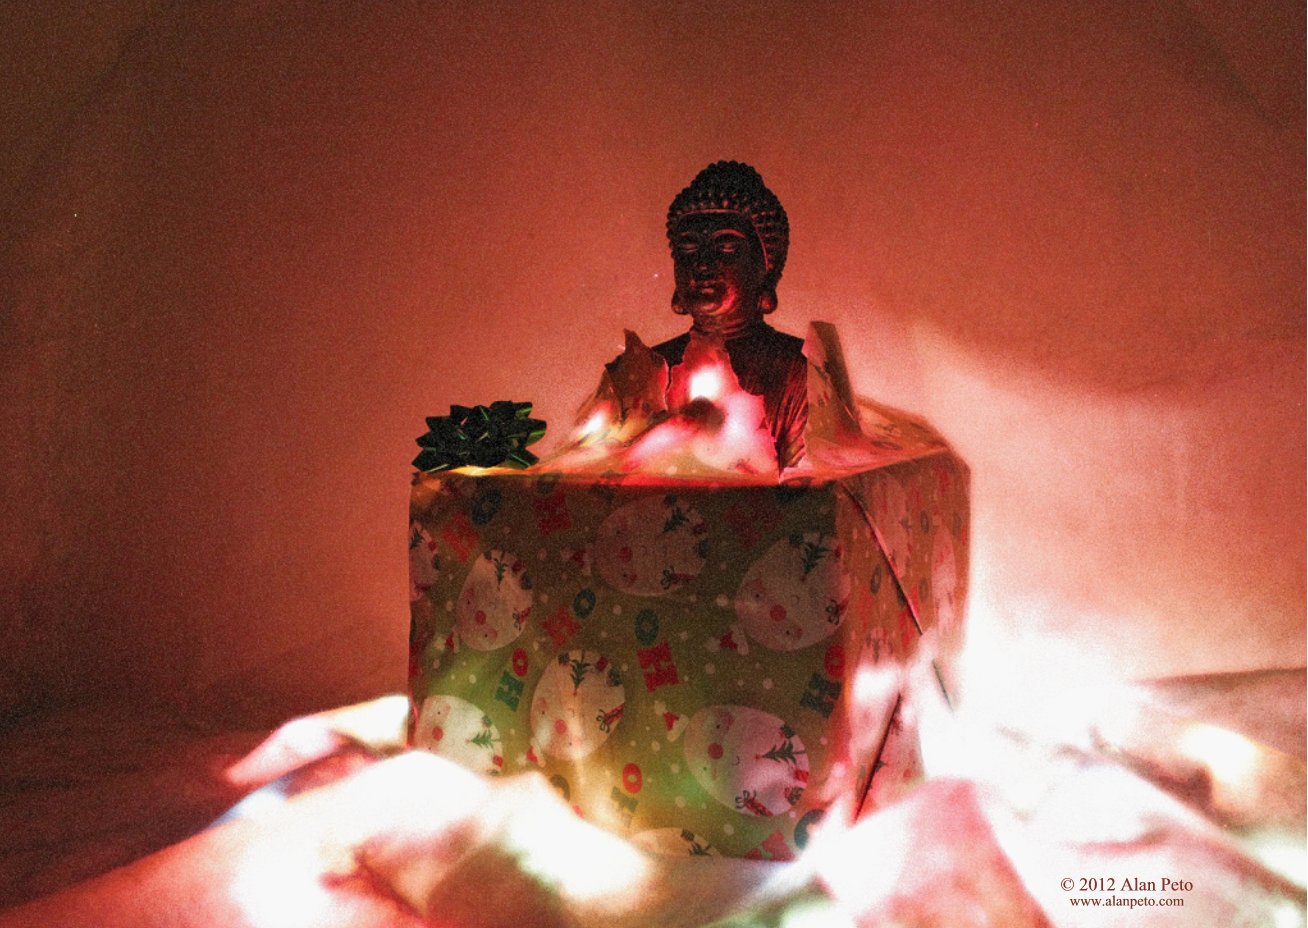 The Buddha wants to bring you the present of enlightenment!